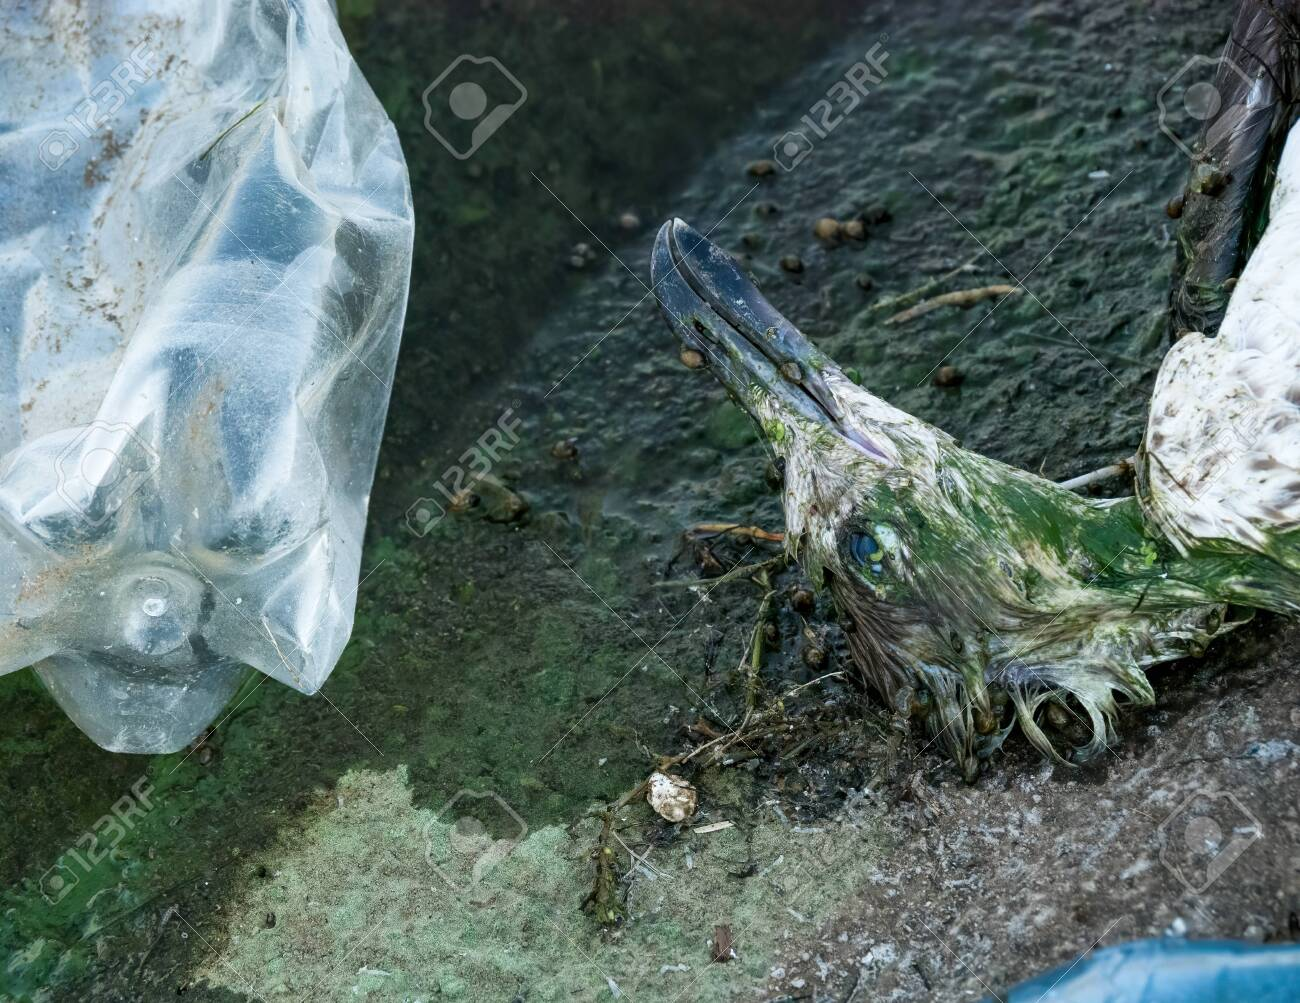 A Dead Seagull Or Bird At The Edge Of The Water Next To Plastic Stock Photo Picture And Royalty Free Image Image 154200822